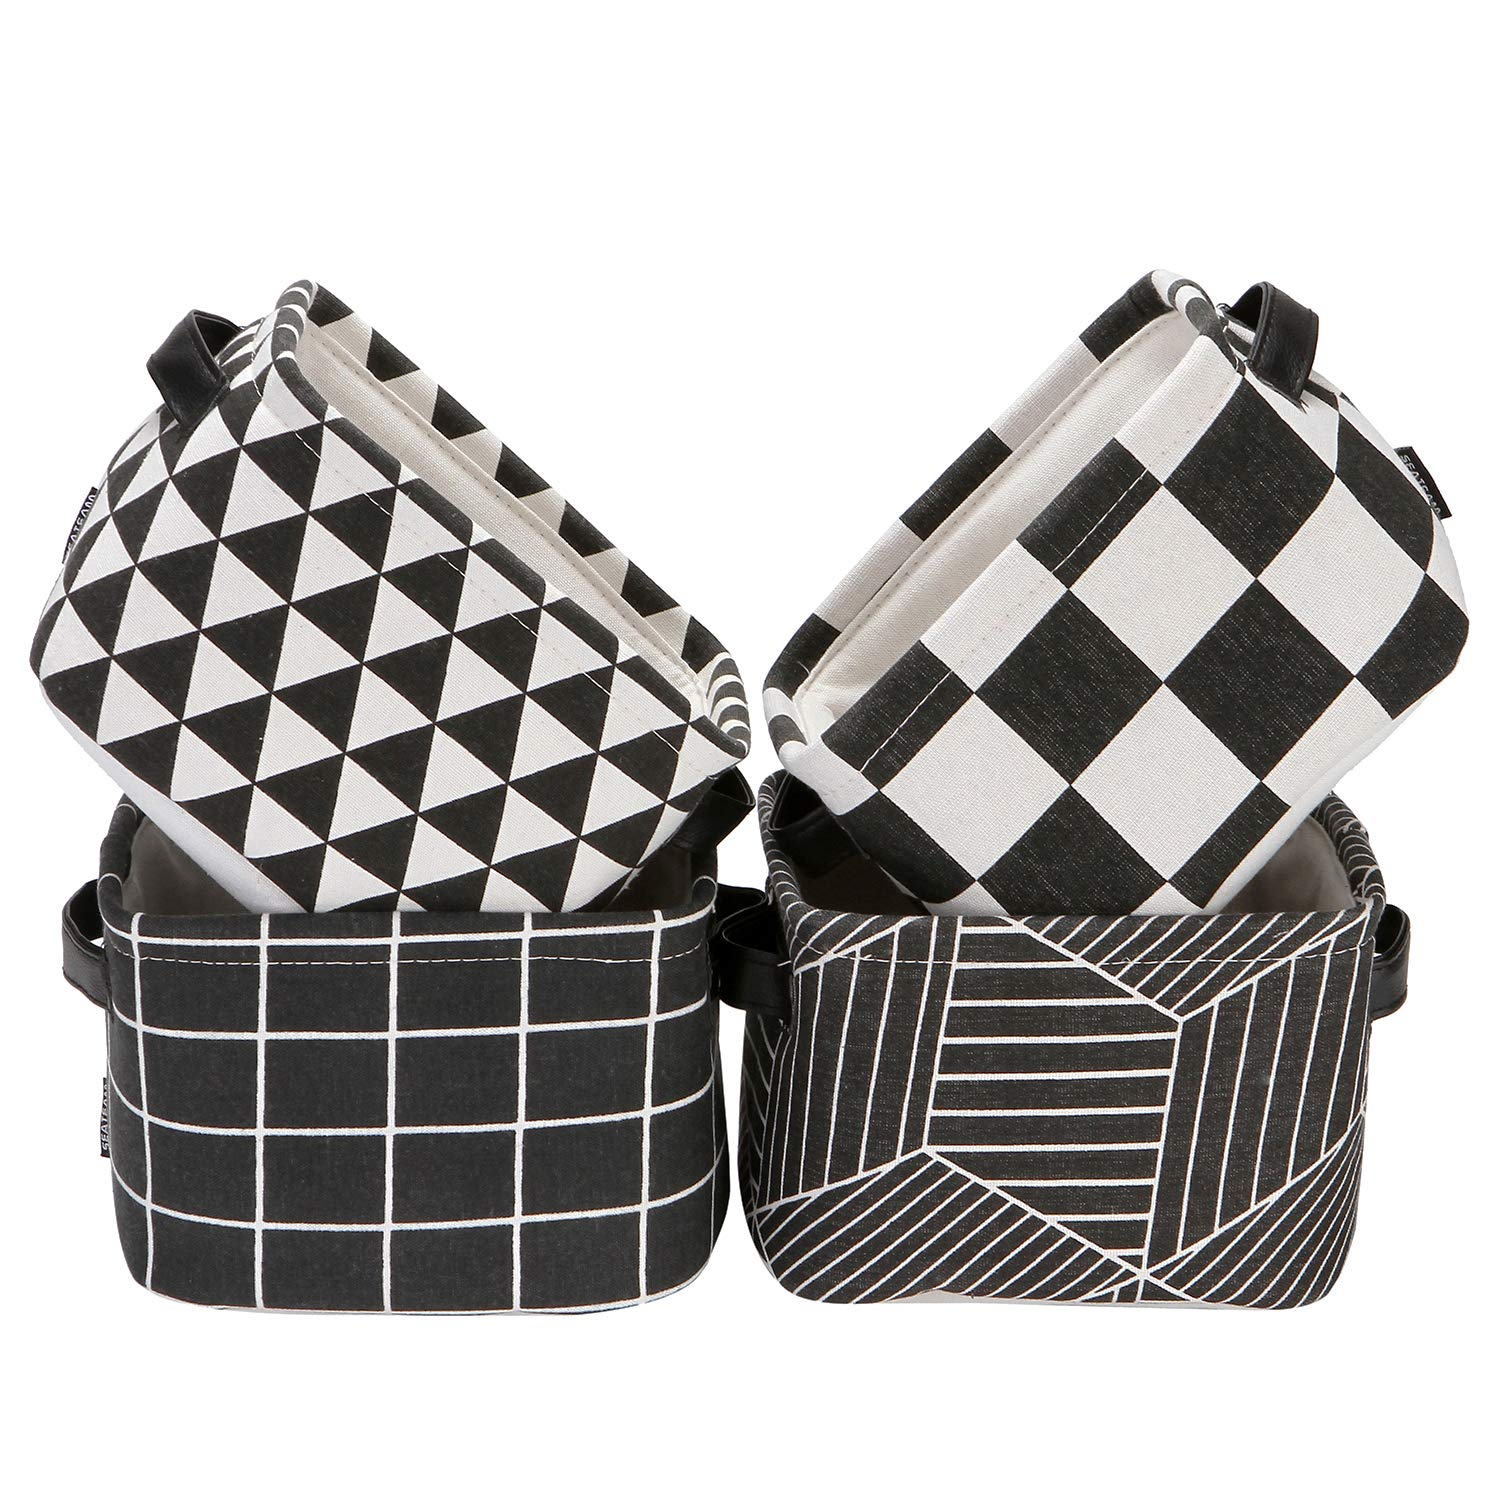 Sea Team Foldable Mini Square New Black and White Geometric Theme 100% Natural Linen & Cotton Fabric Storage Bins Storage Baskets Organizers for Shelves & Desks - Set of 4 (Black)